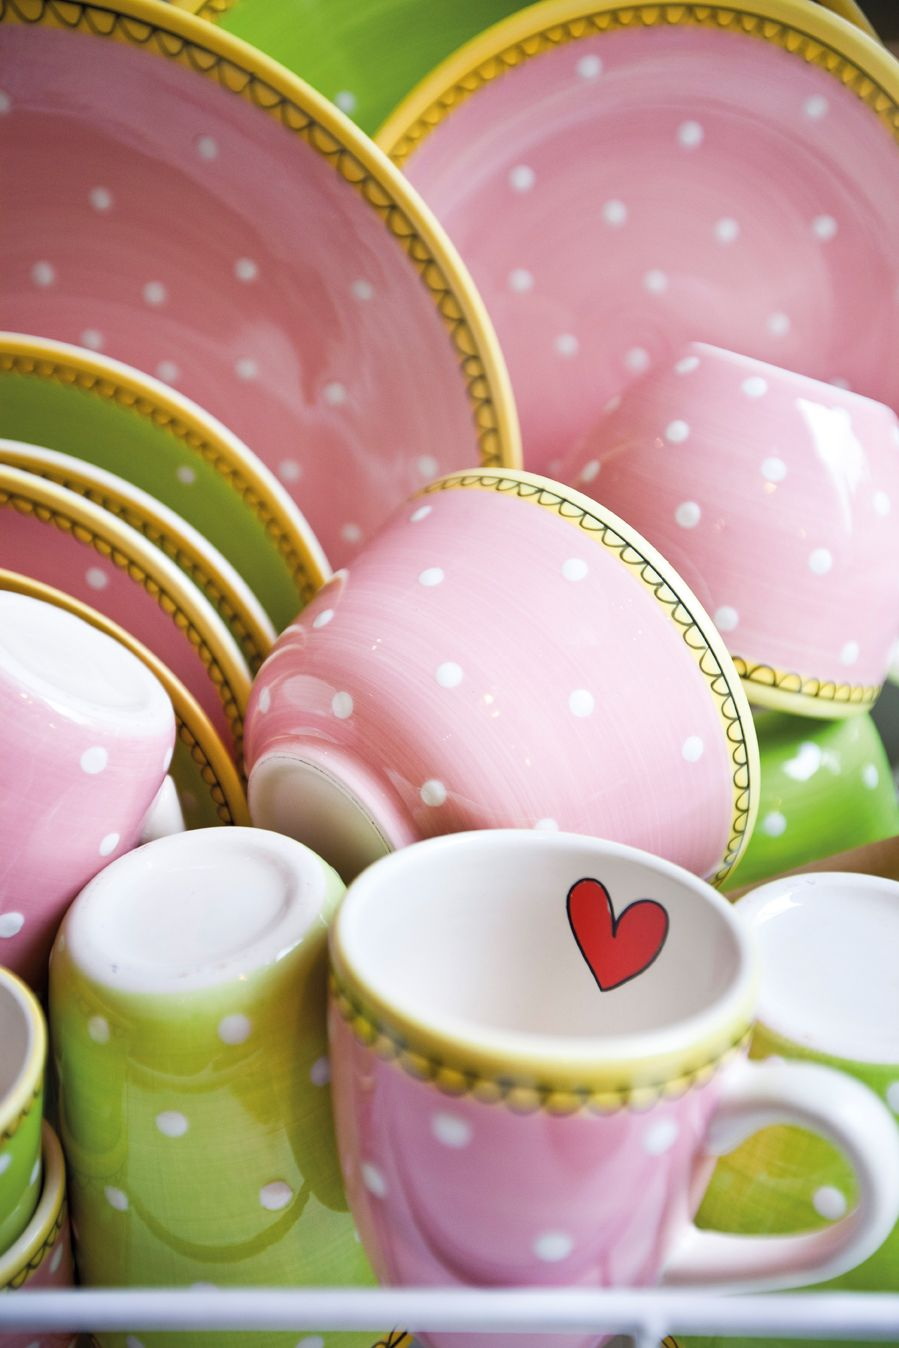 .Polka Dotted Dishes